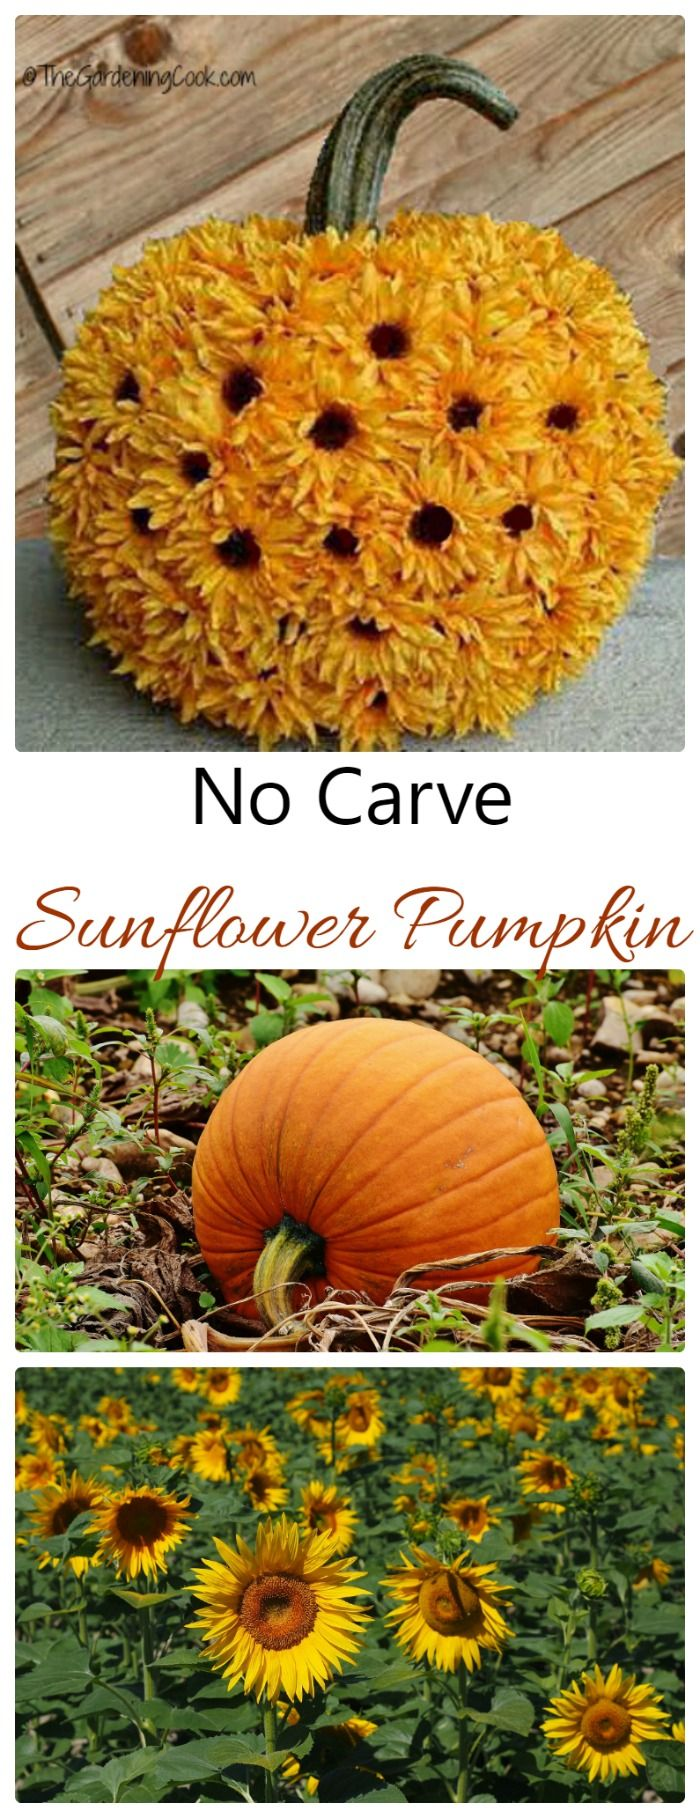 This no carve sunflower pumpkin is mess free and makes such a pretty display. It is easy to do with either real sunflowers or silk ones.